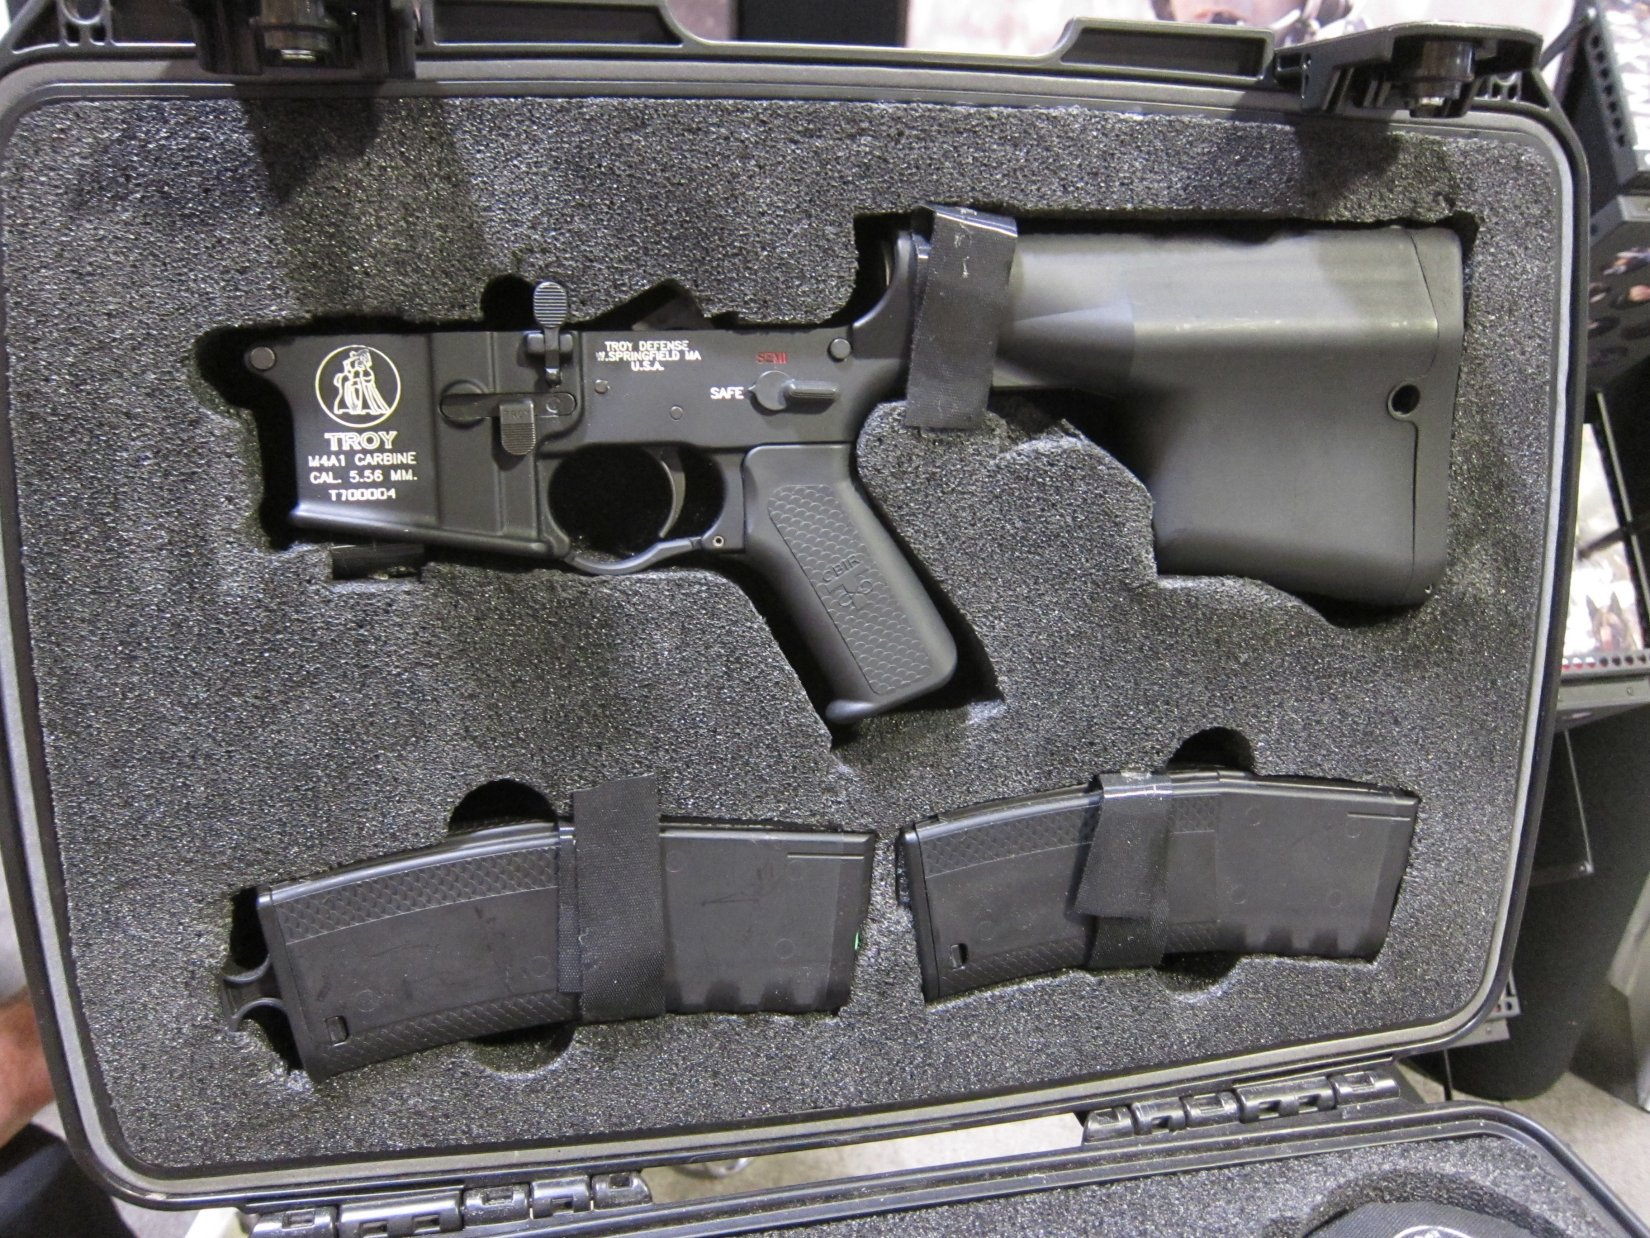 Troy Industries M7 Tactical AR 15 SBR Upper Receiver Lower Receiver Upgrade Kit SOFIC 2012 DefenseReview.com DR 3 Troy Industries M7 Upper Receiver/Lower Receiver Upgrade Kit for Tactical AR 15 Carbine Lowers (Video!)